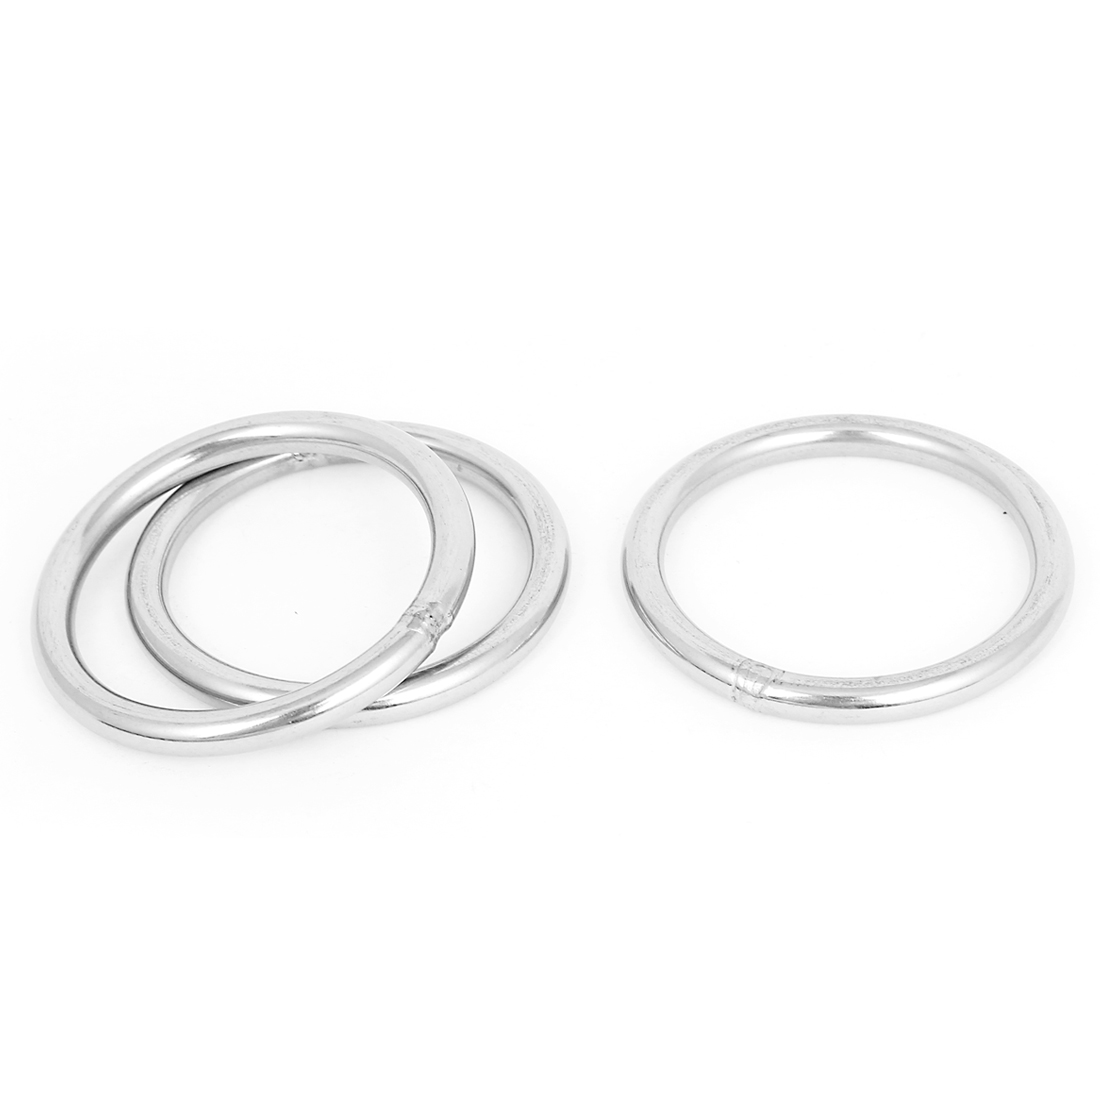 60mm x 6mm 304 Stainless Steel Webbing Strapping Welded O Rings 3 Pcs